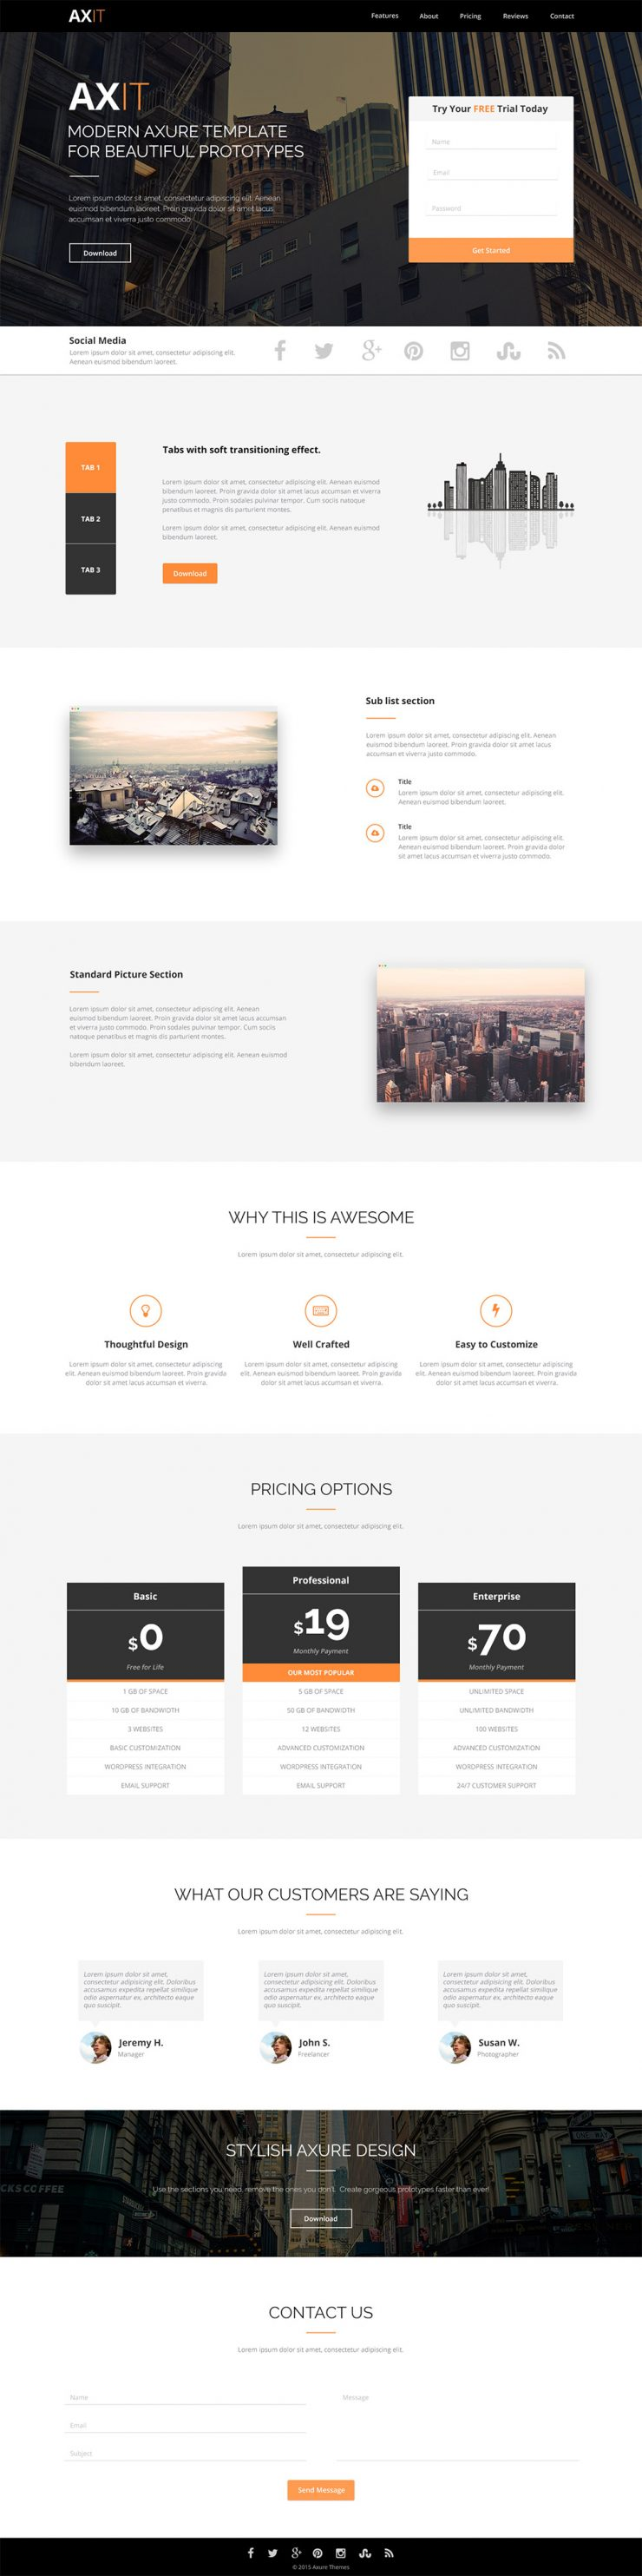 Clean Modern Landing page Template Design Free PSD www, Website Template, Website Layout, Website, webpage, Web Template, Web Resources, web page, Web Layout, Web Interface, Web Elements, Web Design, Web, UX, User Interface, unique, UI, Template, Stylish, Single Page, Simple, Services, Resources, Quality, Psd Templates, PSD Sources, psd resources, PSD images, psd free download, psd free, PSD file, psd download, PSD, Professional, Pricing Table, Portfolio, plans, Photoshop, pack, original, one page, official, new, Modern, Membership, material design, Layered PSDs, Layered PSD, Landing Page, Homepage, Graphics, Fresh, Freebies, Freebie, Free Resources, Free PSD, free download, Free, Flat Design, Elements, download psd, download free psd, Download, detailed, Design, Creative, Corporate, Clean, agency, Adobe Photoshop,